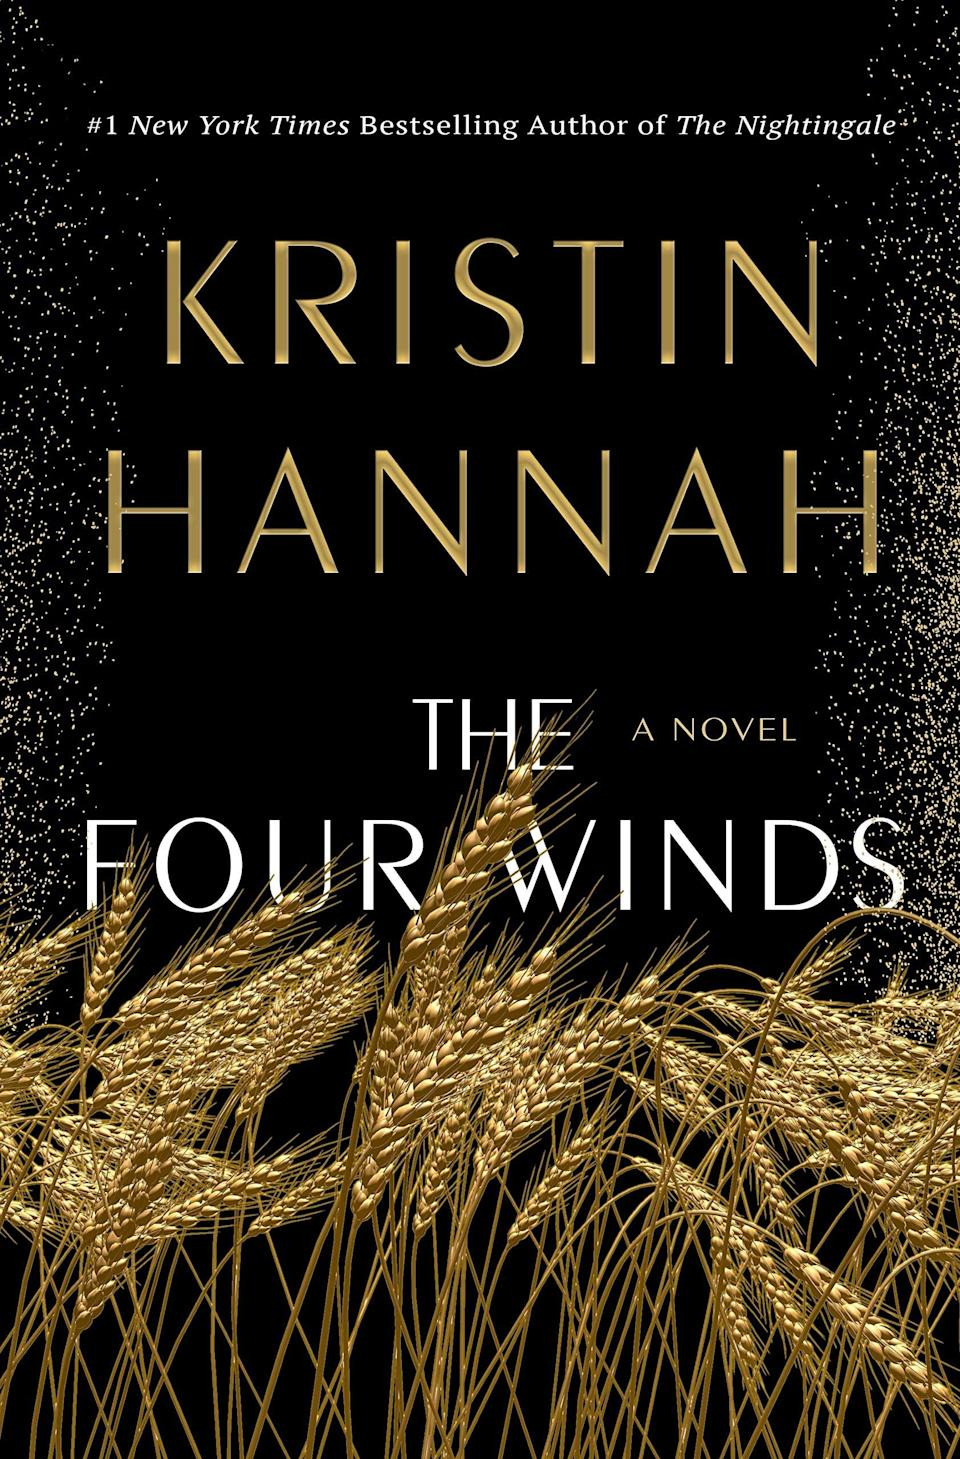 <p>Bestselling author Kristin Hannah returns with <span><strong>The Four Winds</strong></span>, a sweeping novel set against the backdrop of the Great Depression. As the Dust Bowl begins to ravage her land, Elsa Martinelli is faced with a choice that will change her life forever: leave her Texas home behind for the chance of a better life in California or stay put and fight for the land she loves. </p> <p><em>Out Feb. 2</em></p>